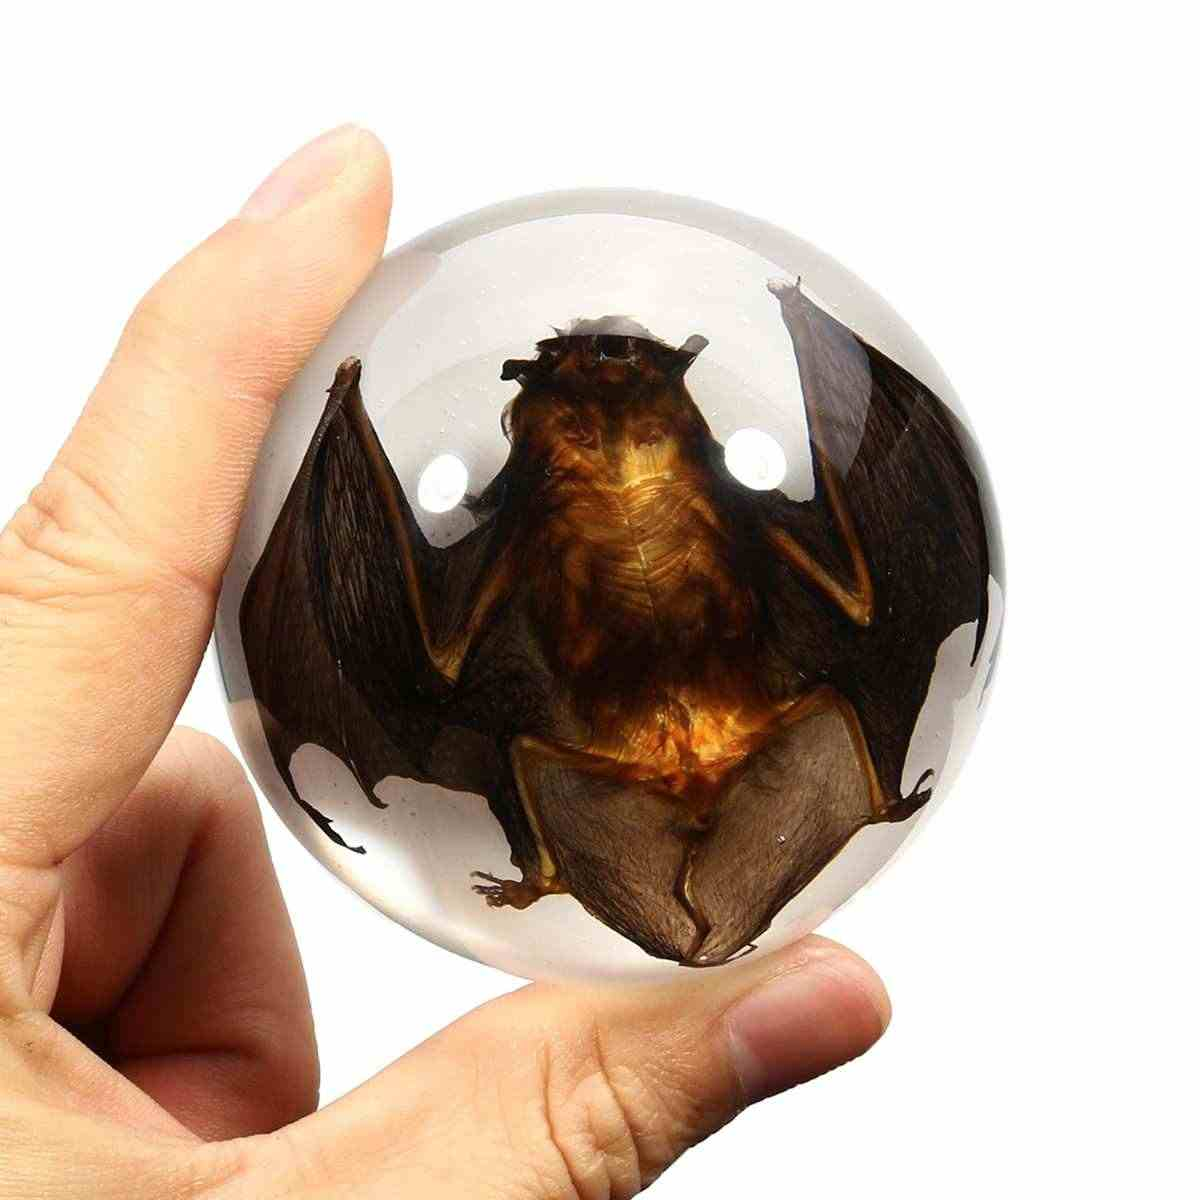 67mm Acrylic Lucite Transparent Bat Specimens Animal Insect taxidermy Bat Amber Educational Teach Supply Biological Collection